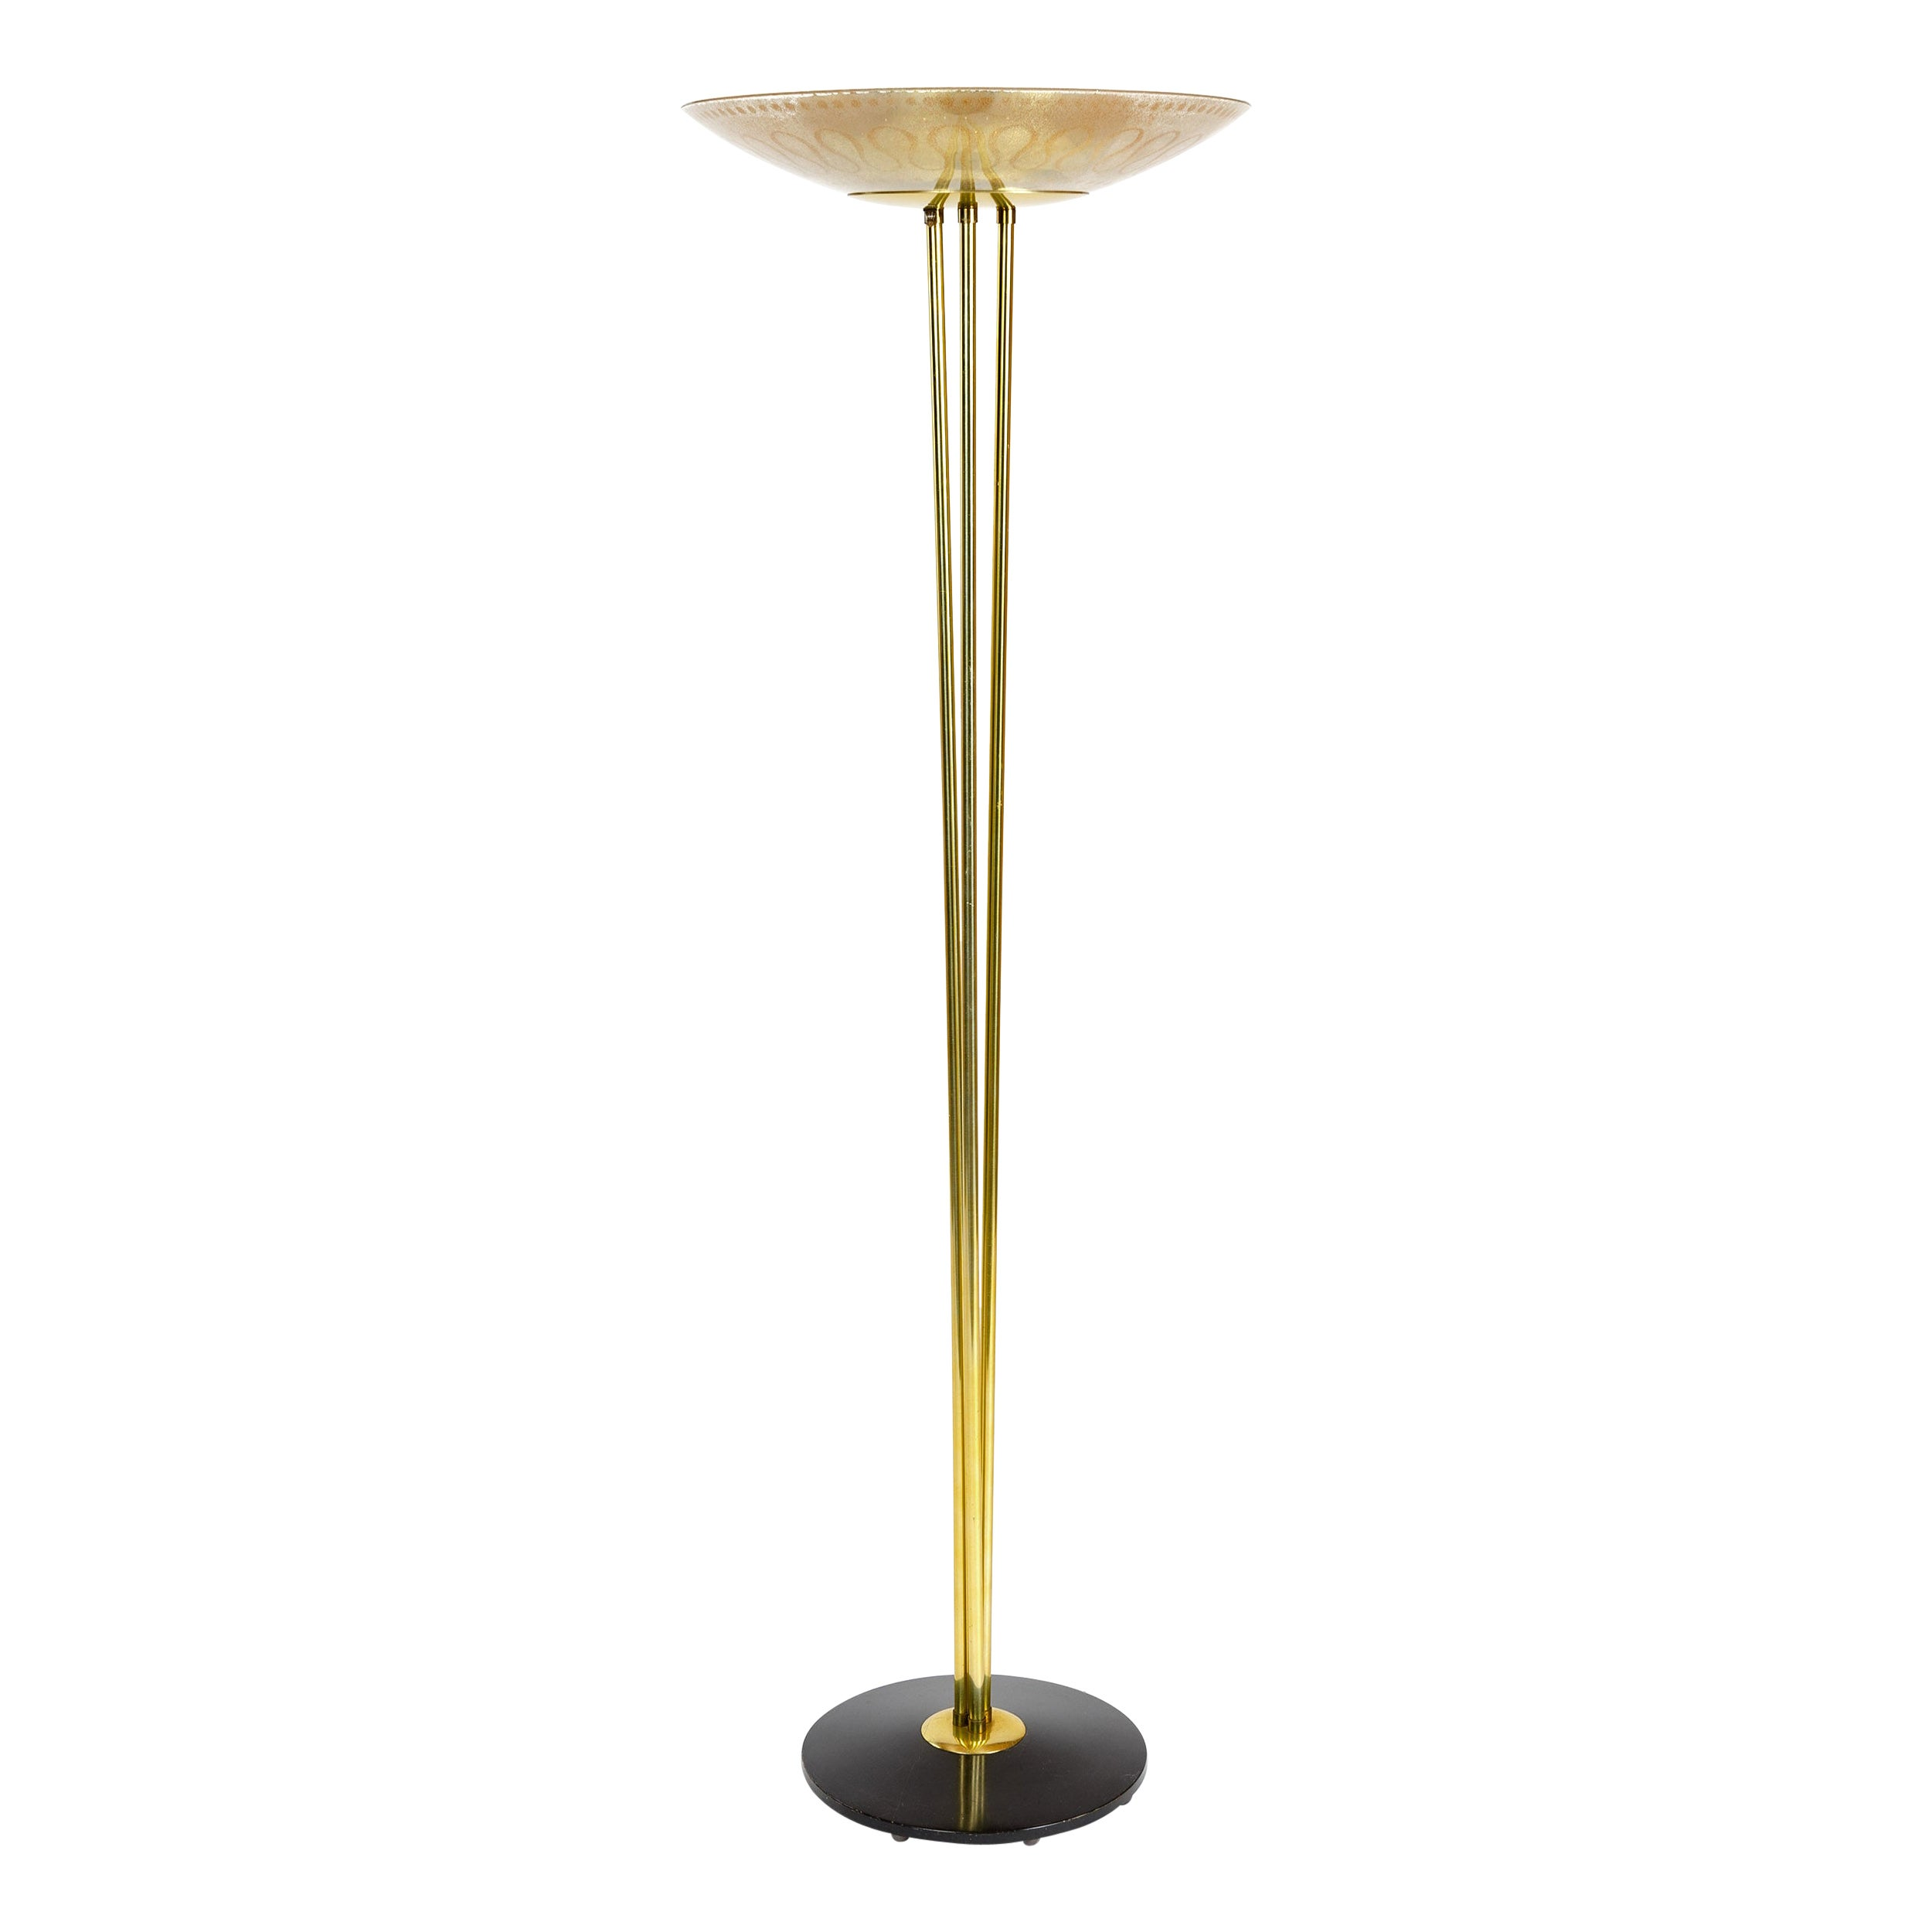 1950s Torchère Floor Lamp by Gerald Thurston for Lightolier